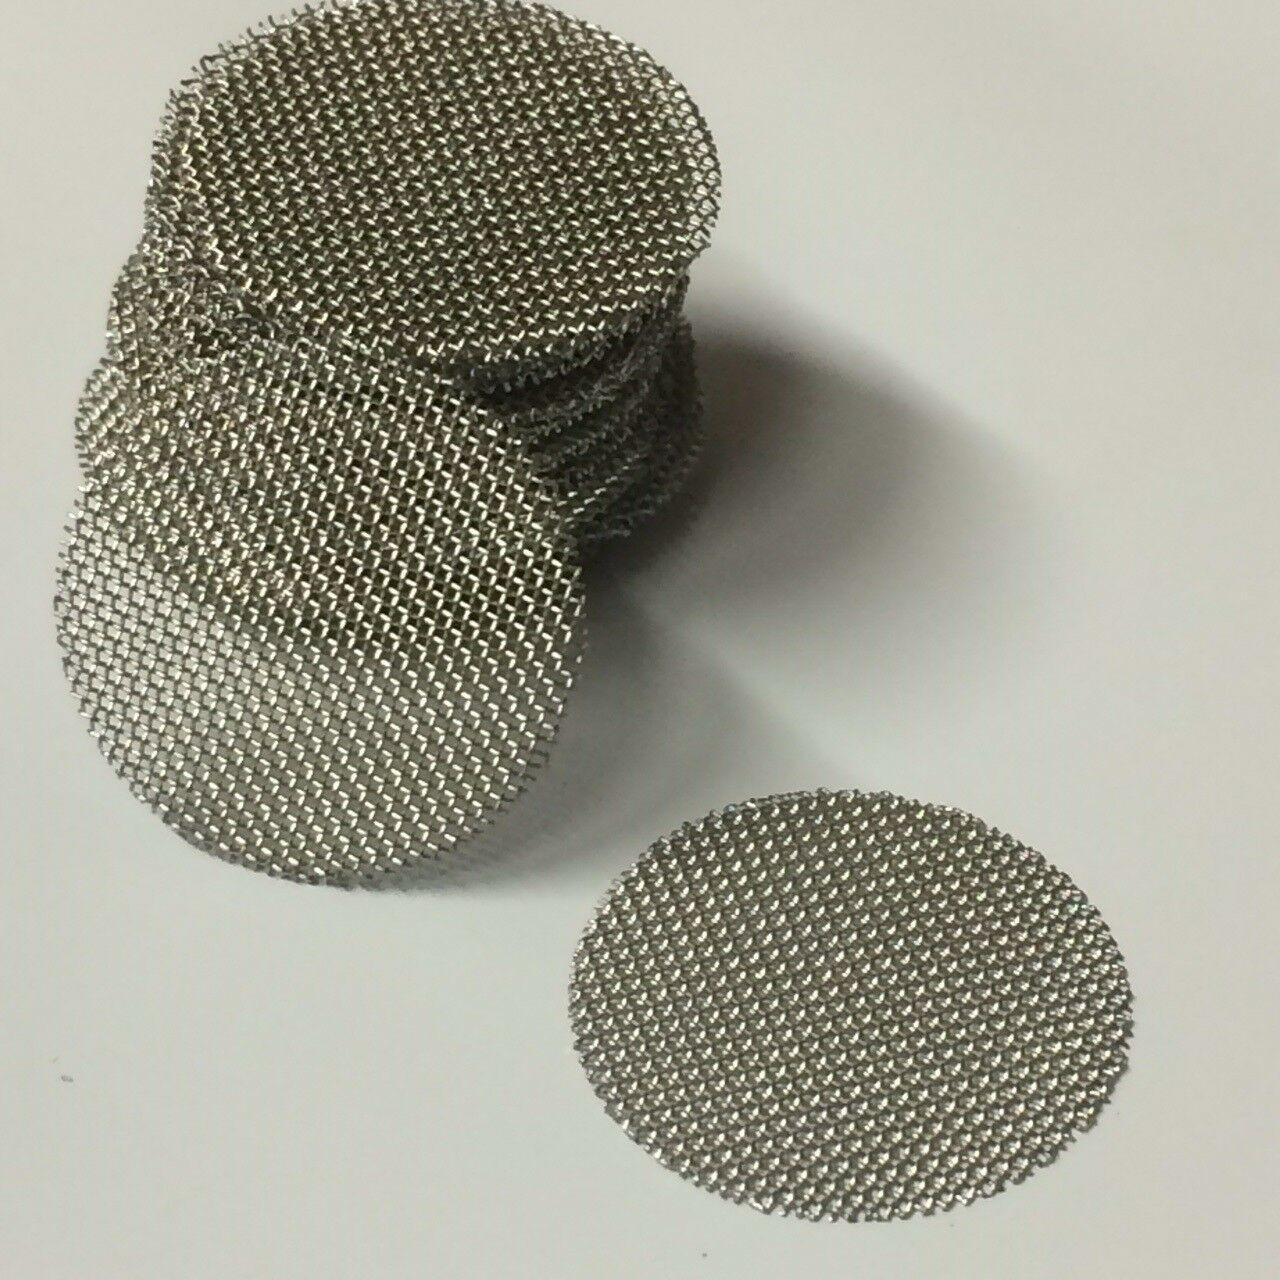 2-320L / Min Flow 316 Stainless Steel Knitted Wire Mesh Disc AISI304 0.04-1mm Thickness Manufactures